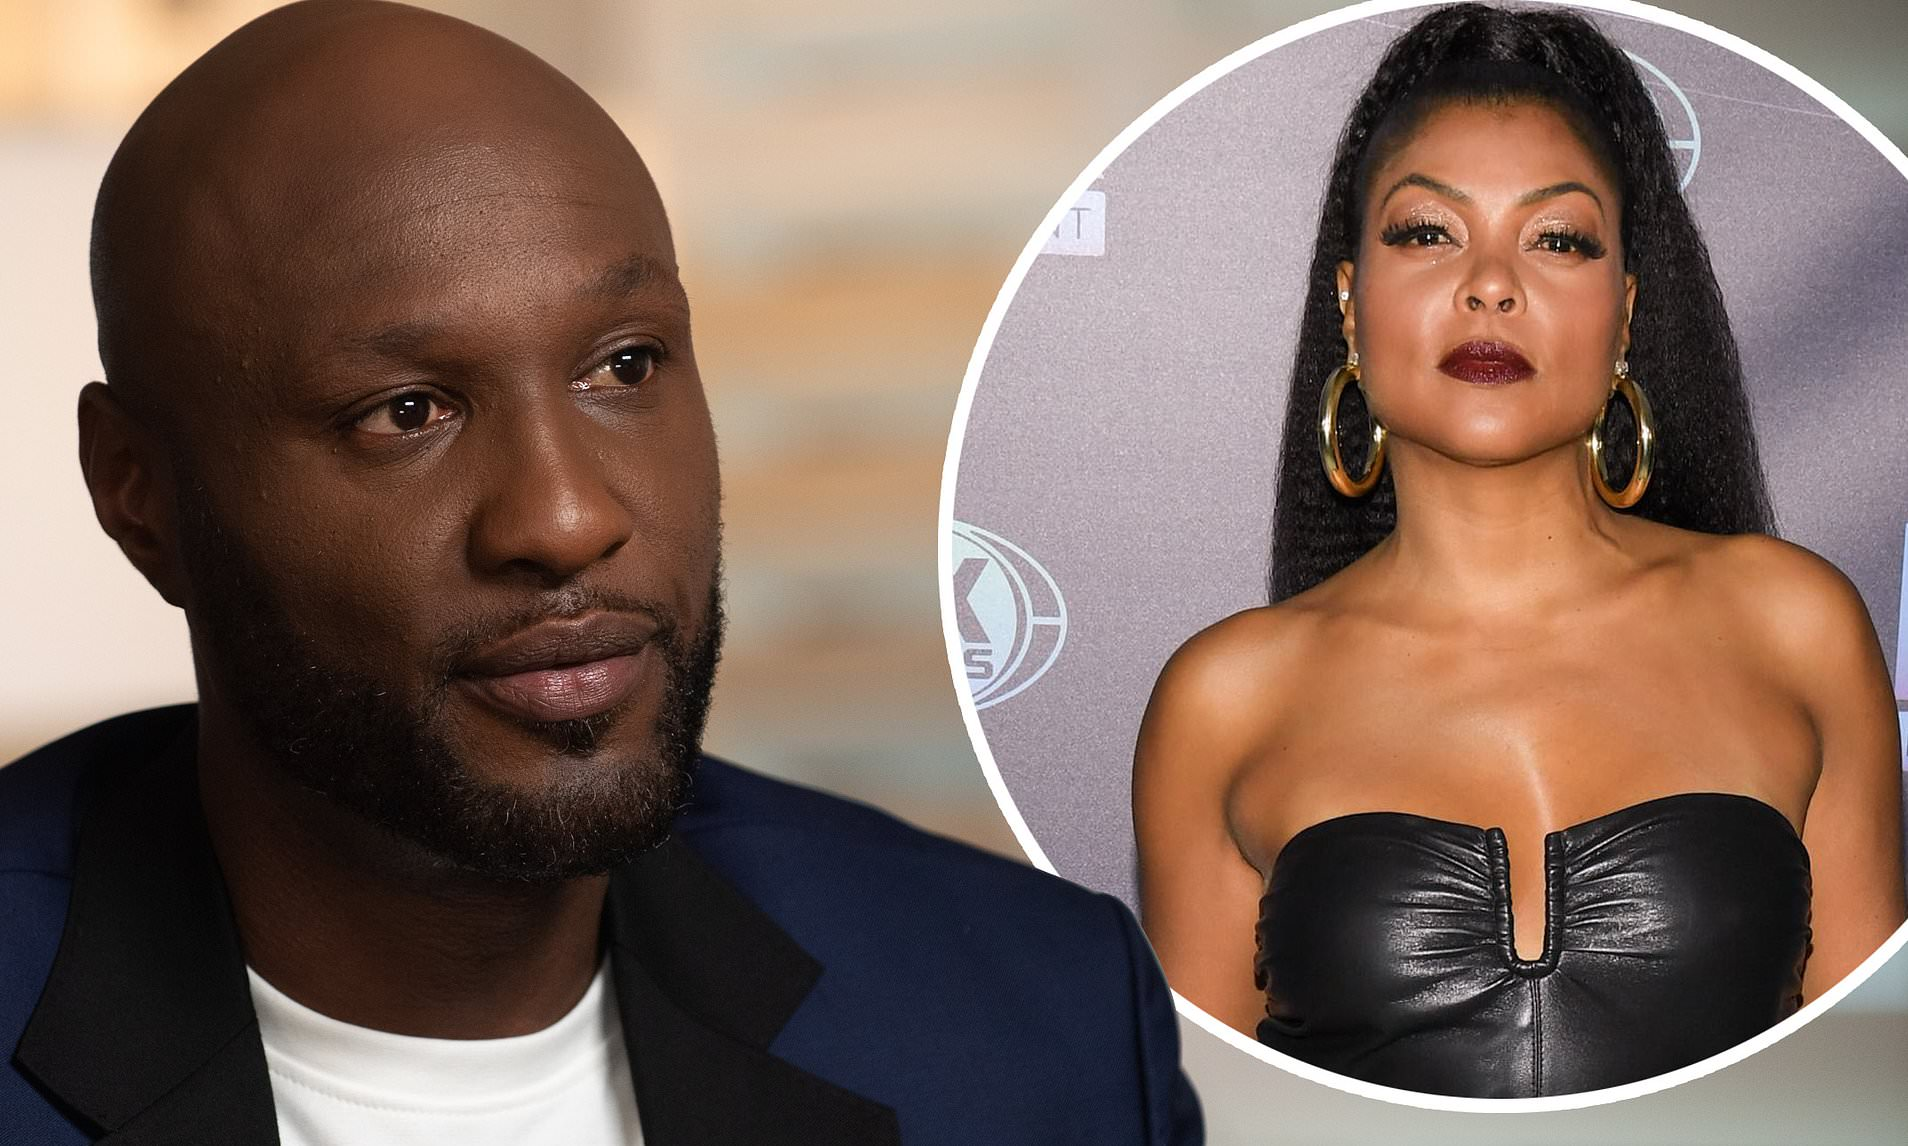 Lamar Odom Speaks About His Relationship With Taraji P. Henson And Brings Up Khloe Kardashian - See The Video